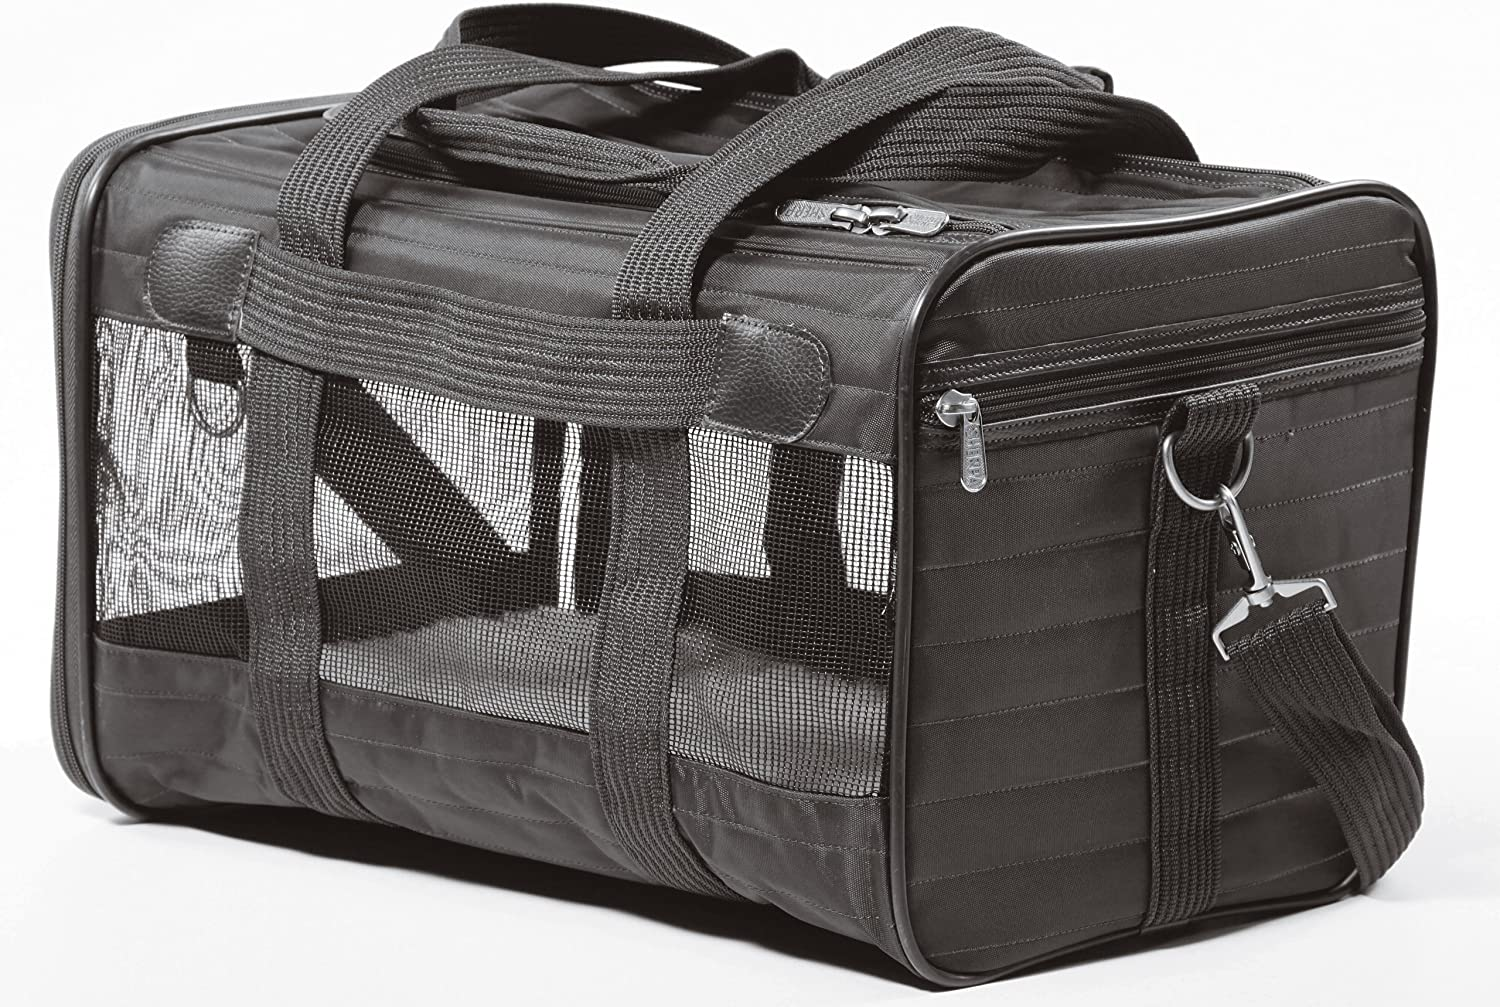 Sherpa Travel Pet Carrier review